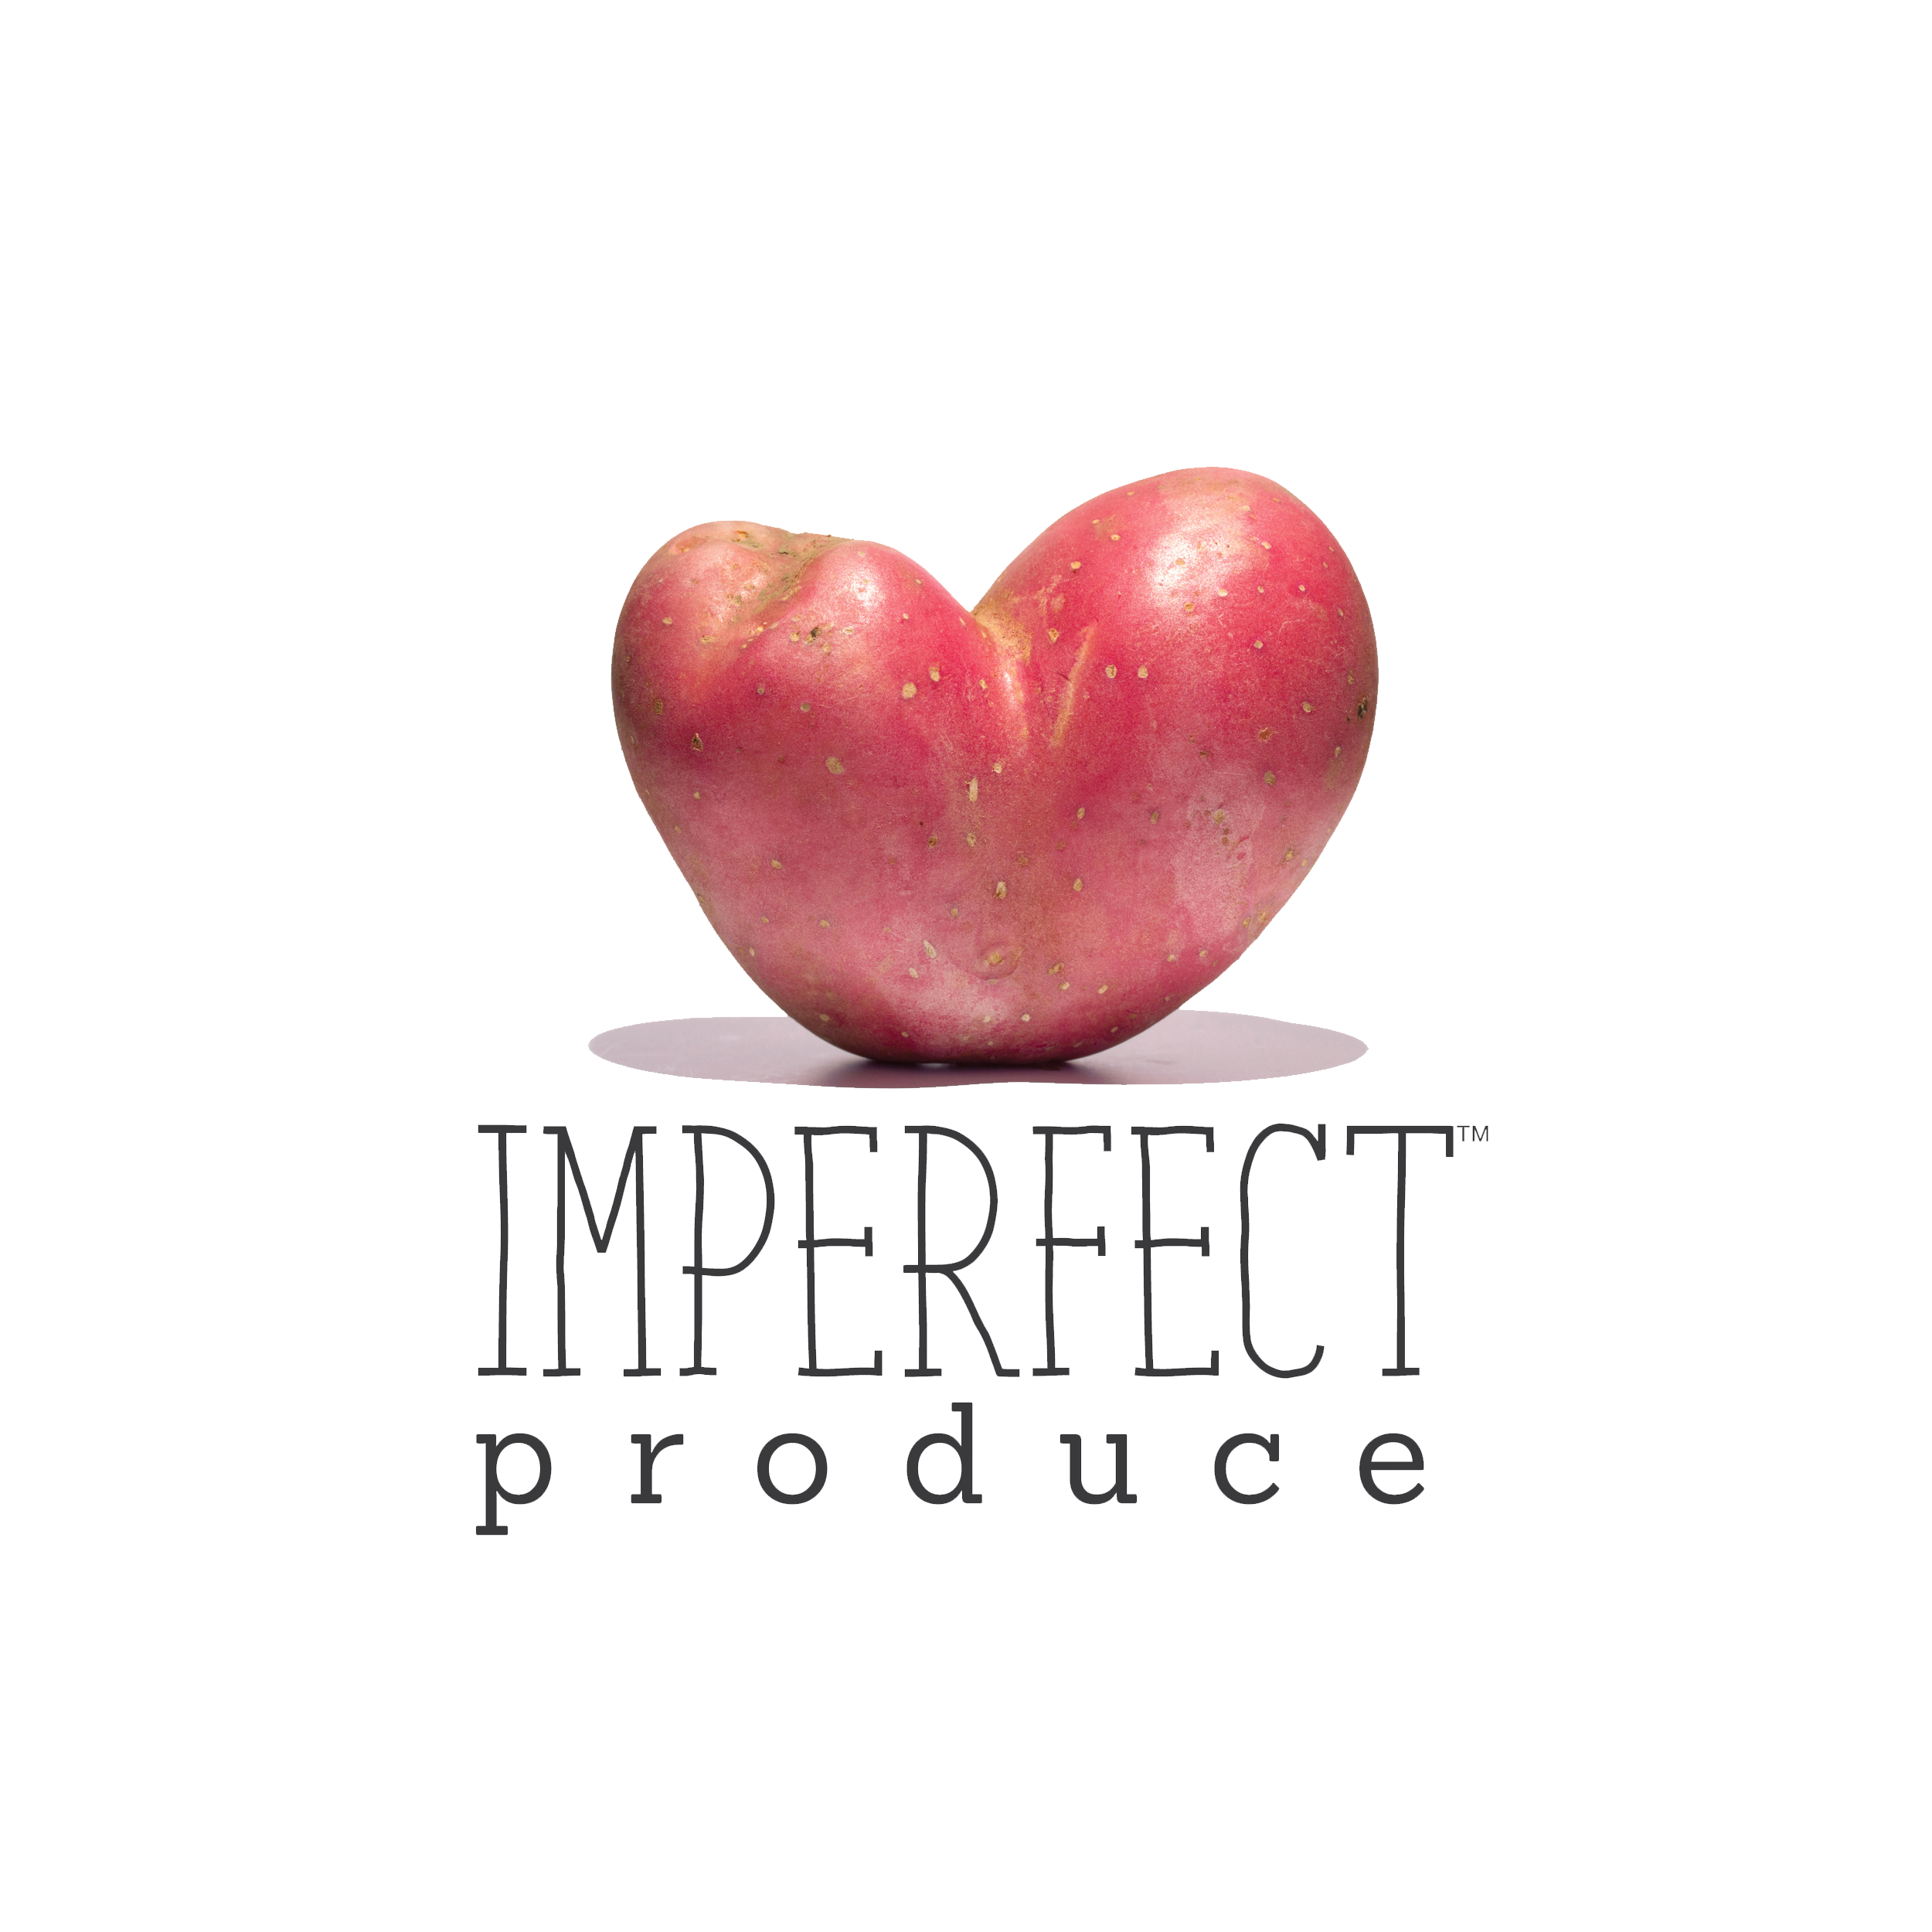 Imperfect Produce Referral Link - Imperfect Produce $10